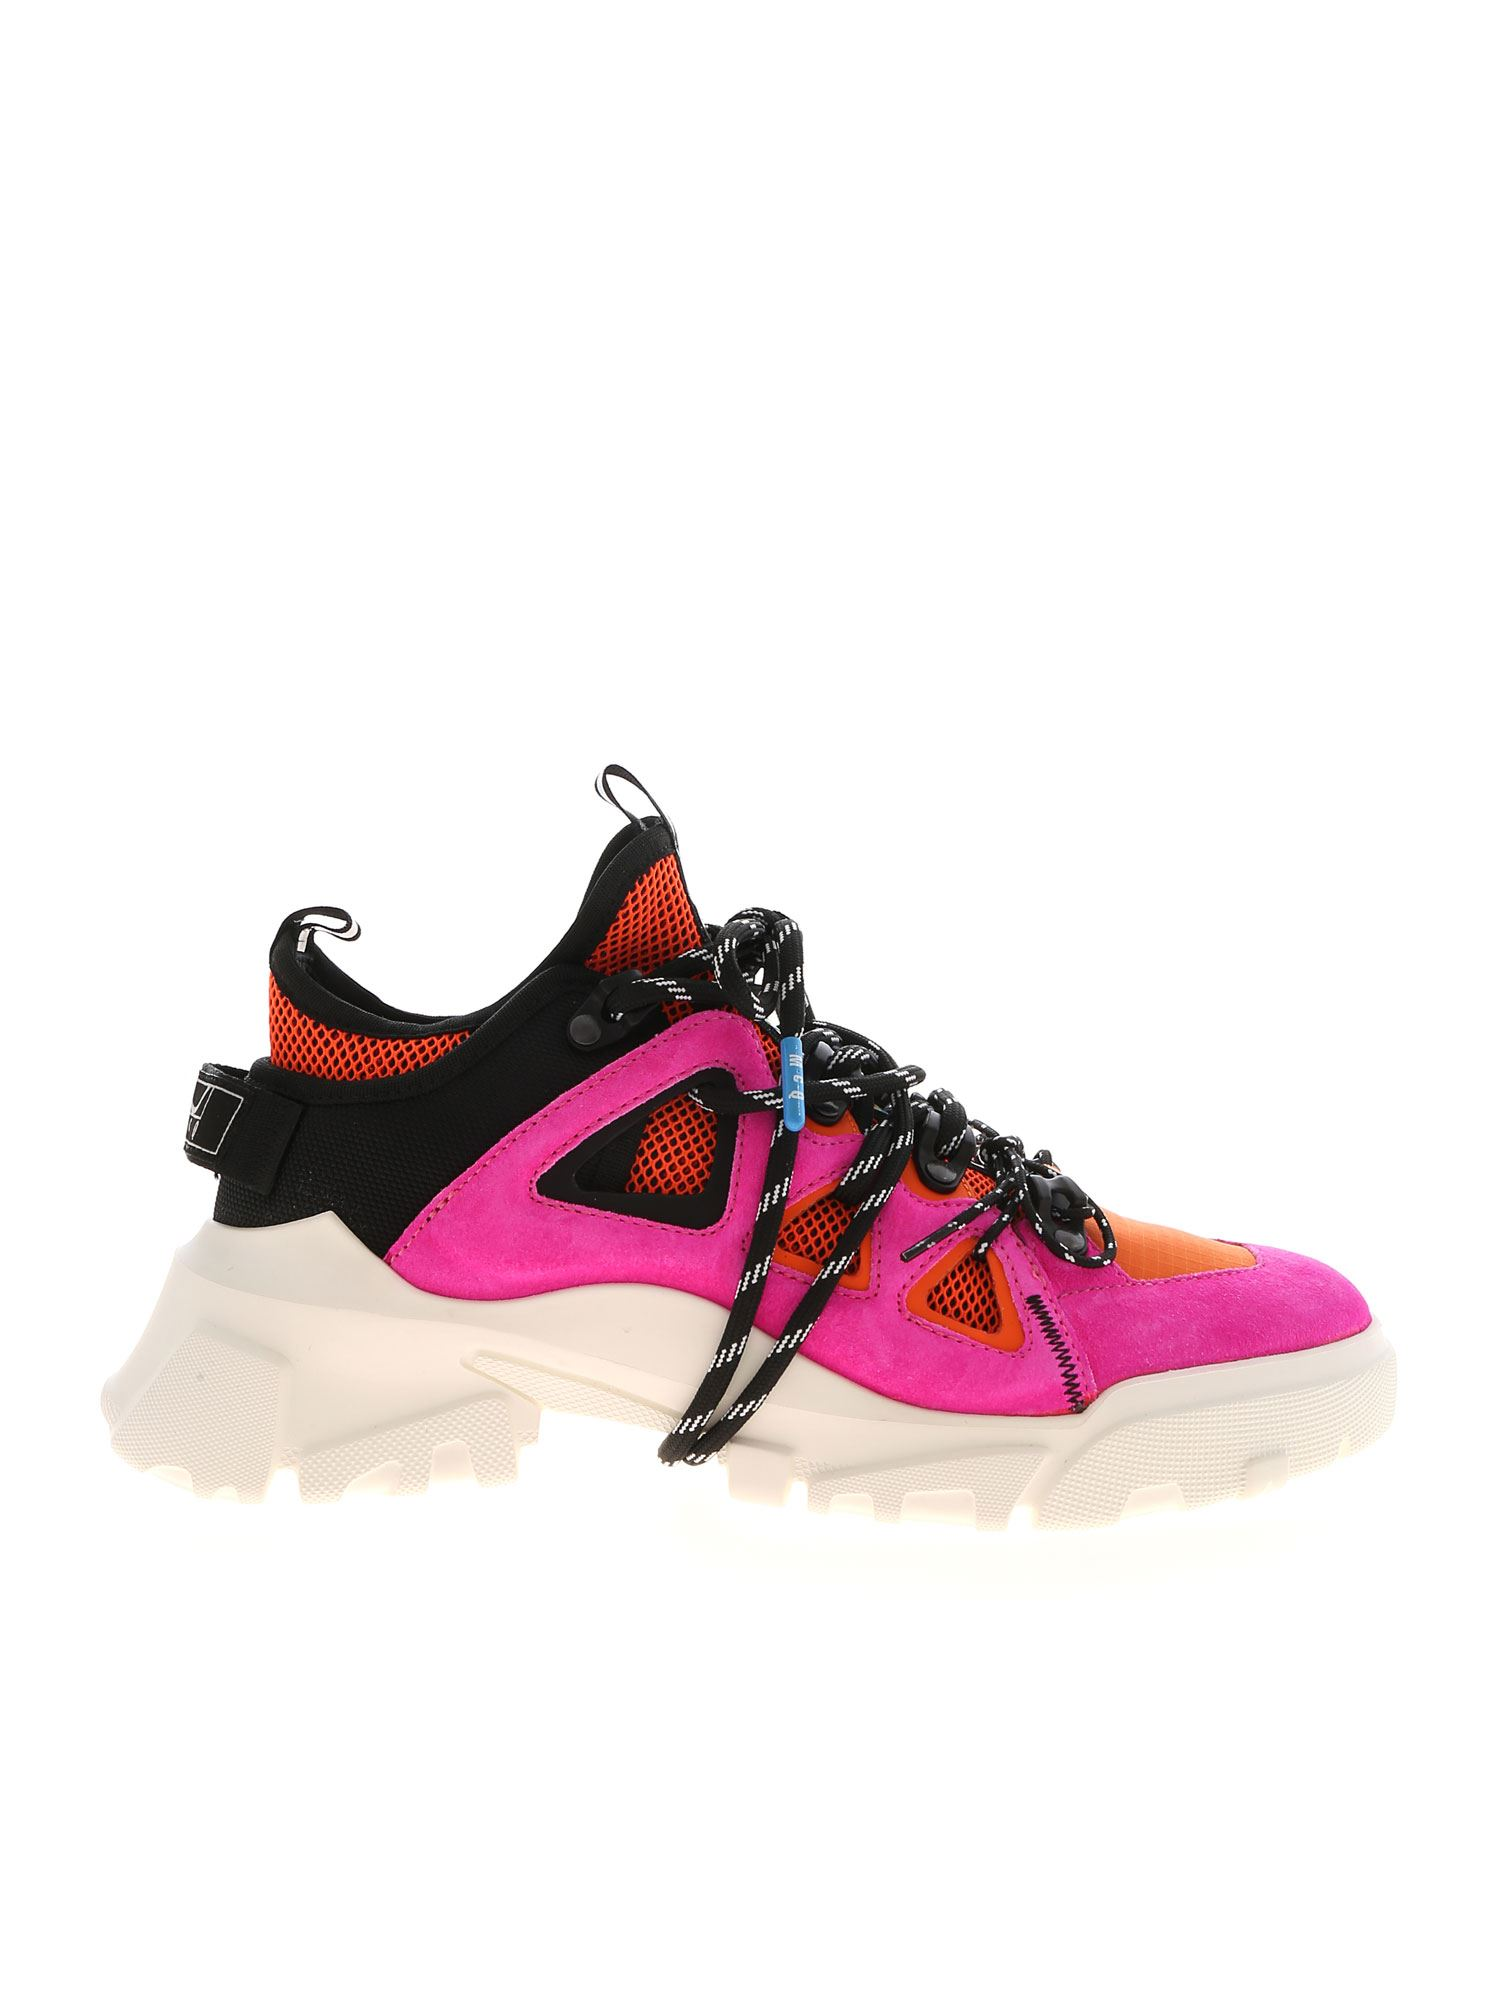 Mcq By Alexander Mcqueen ORBYT MID SNEAKERS IN FUCHSIA AND ORANGE